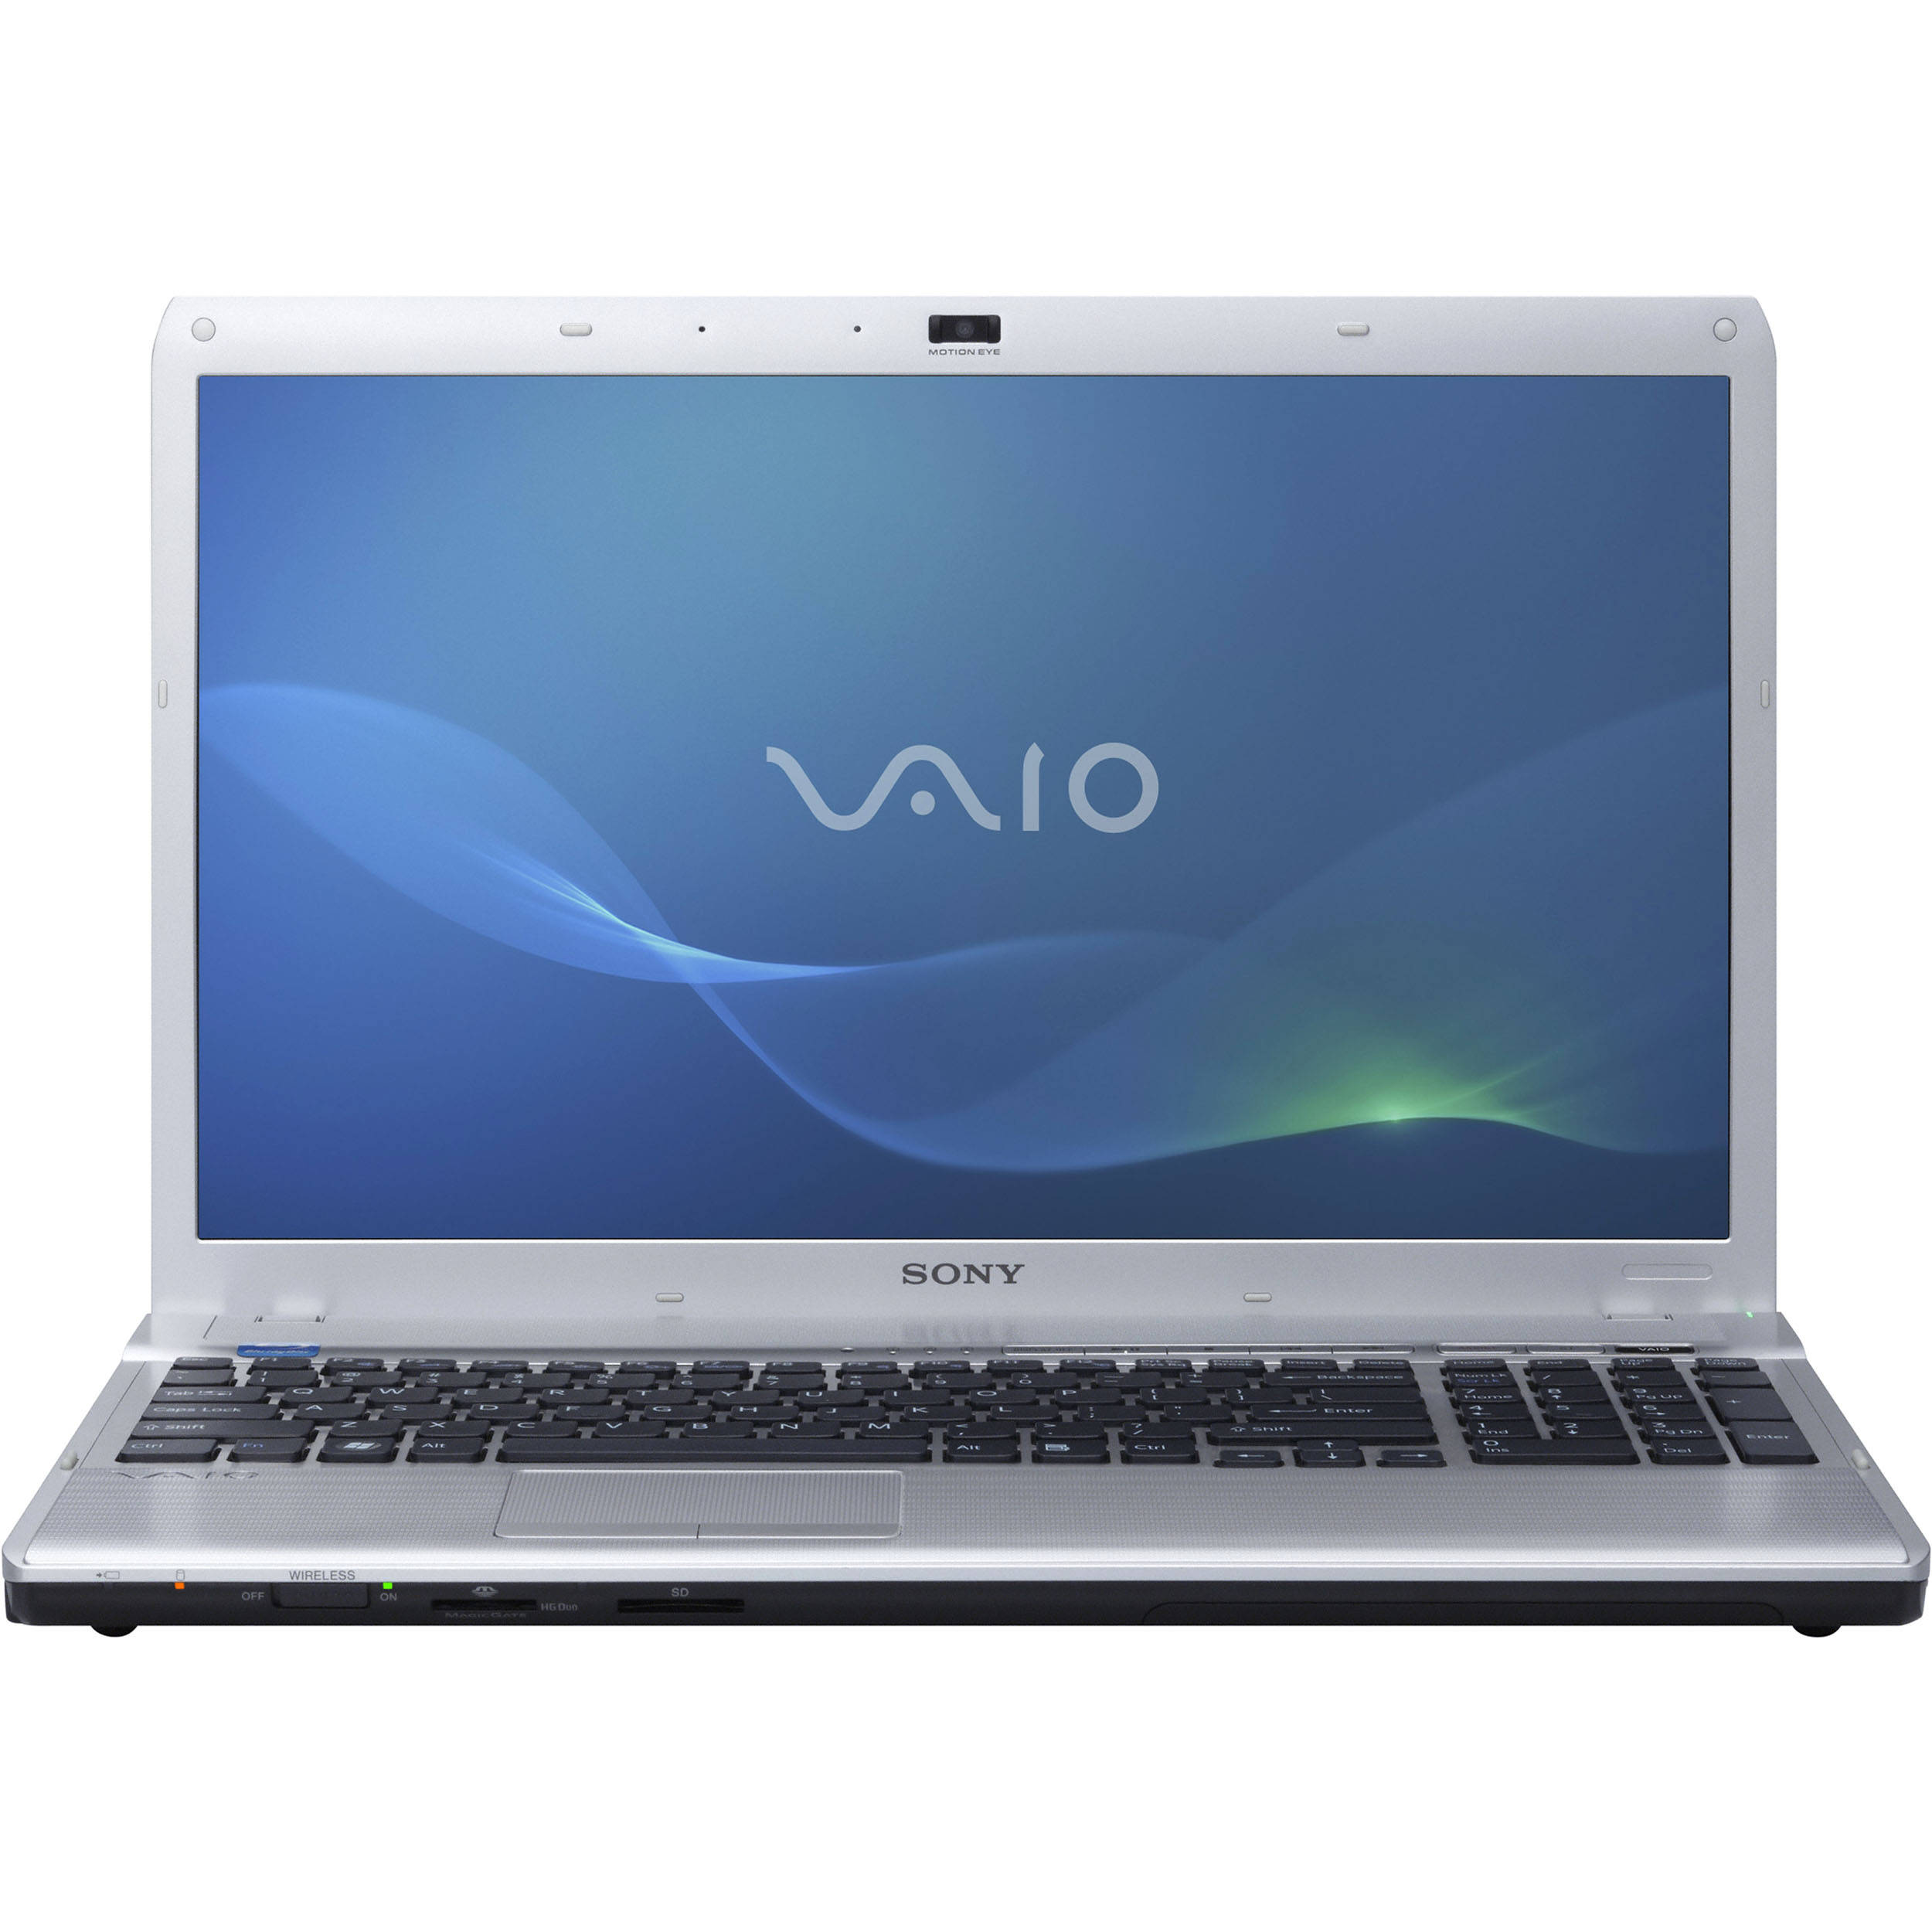 Sony Vaio VPCF121FX Shared Library Drivers for Mac